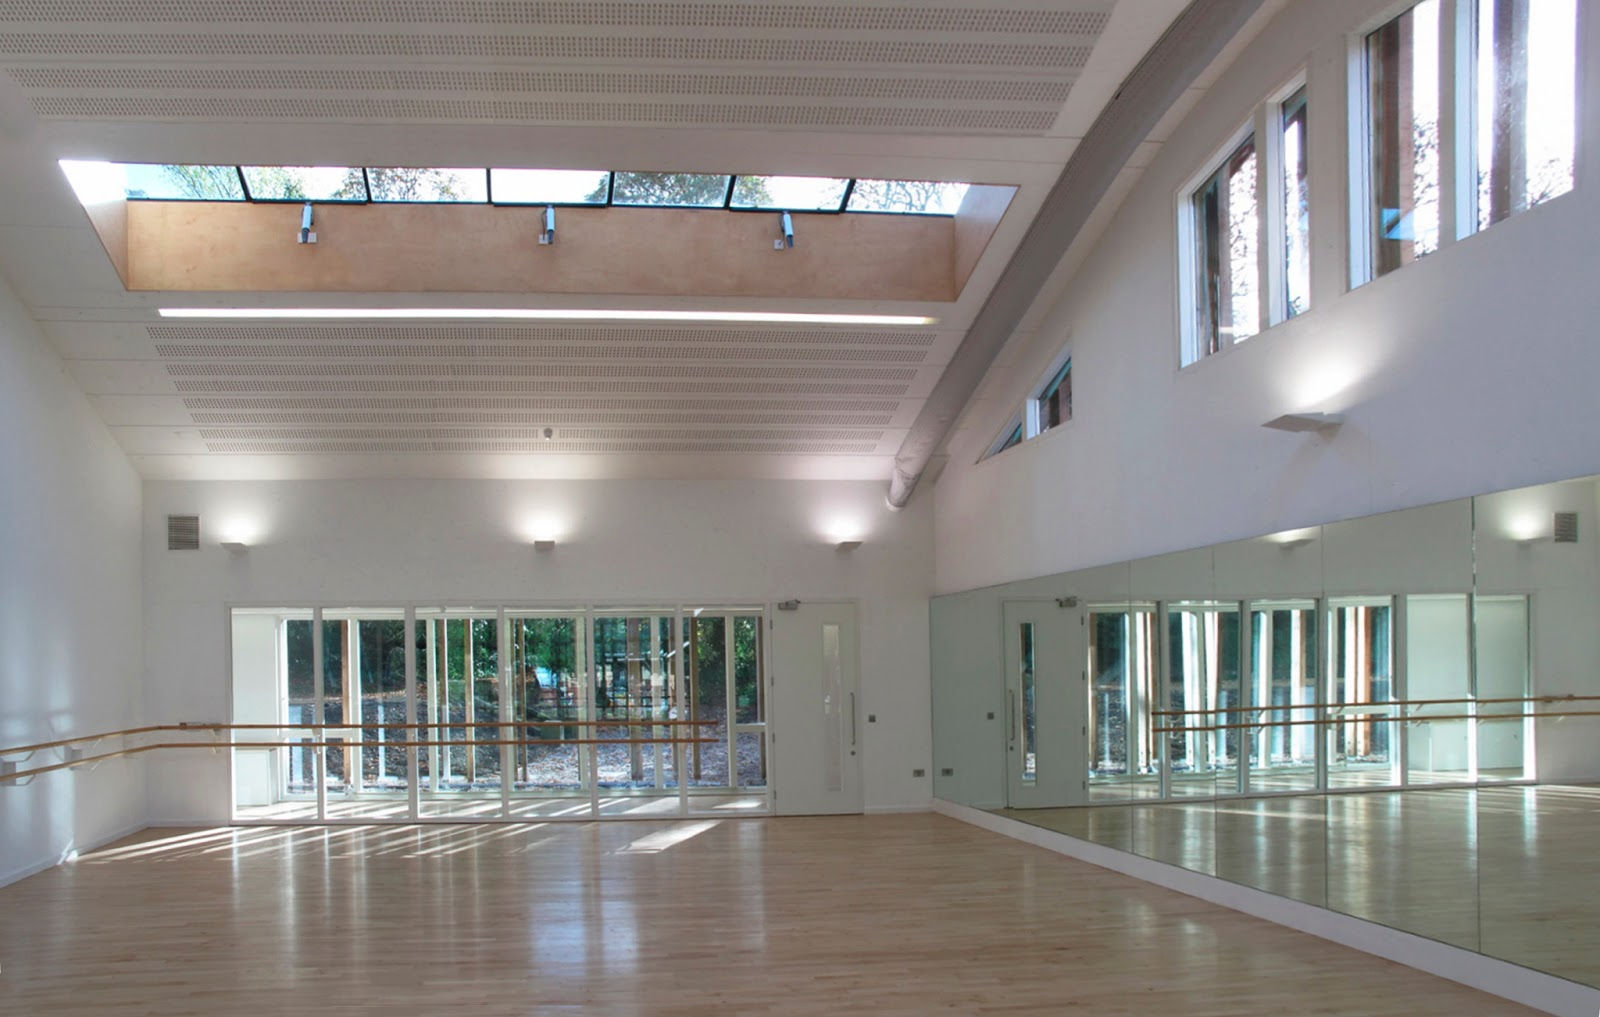 Burrell foley fischer llp dance studios at tring park for Porte arts and dance studio